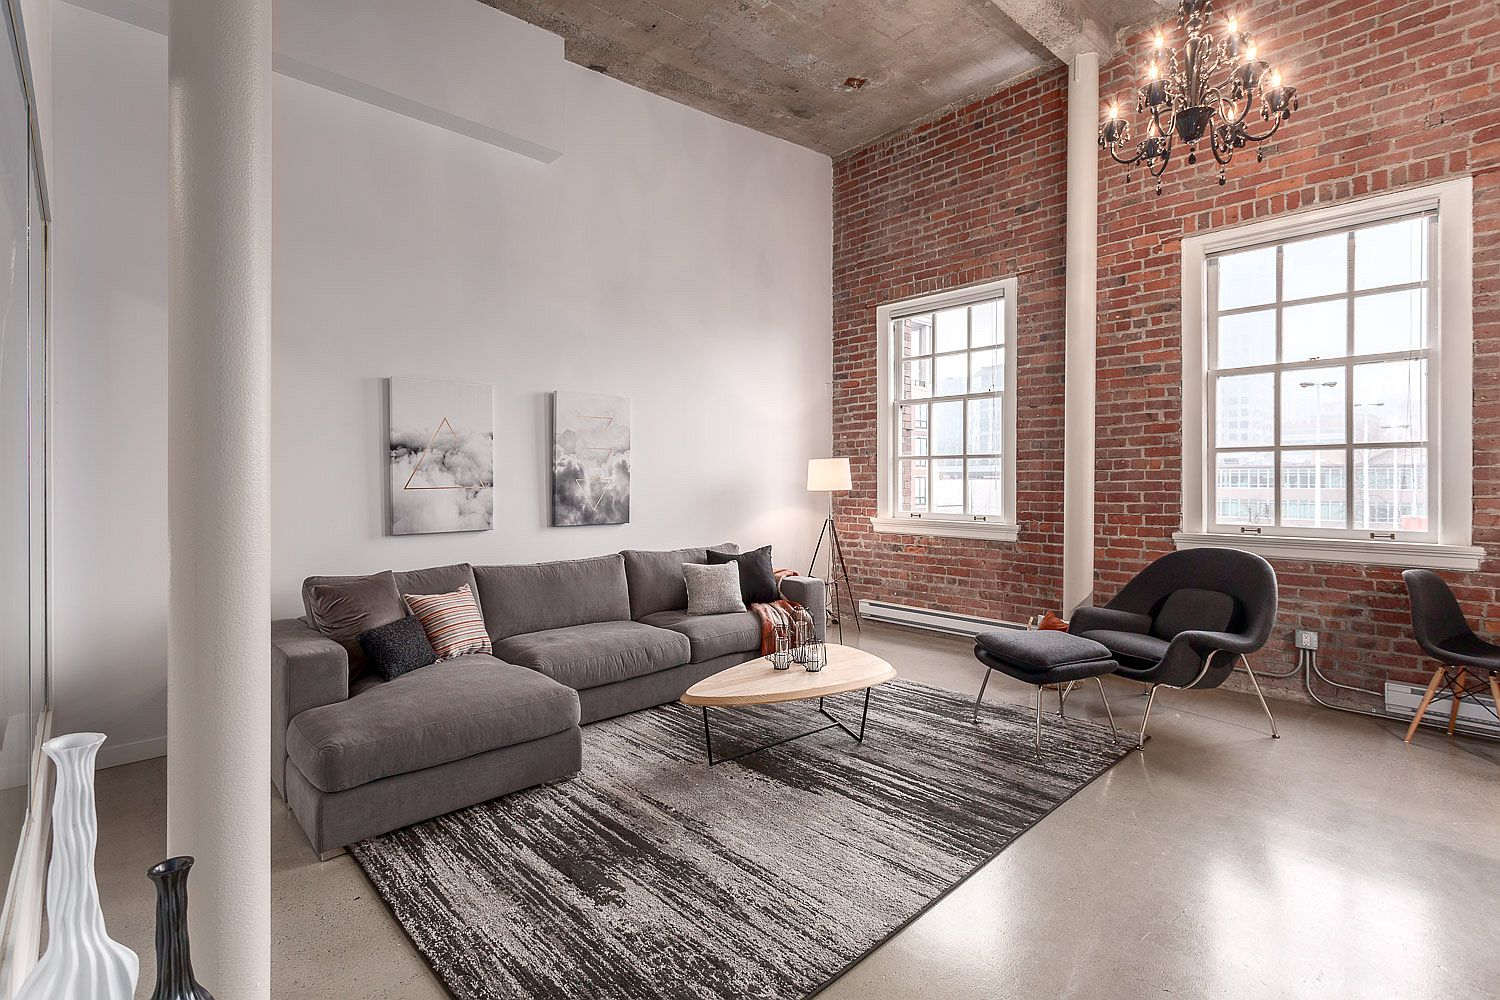 Original brick walls of the apartment give it an exceptional visual appeal